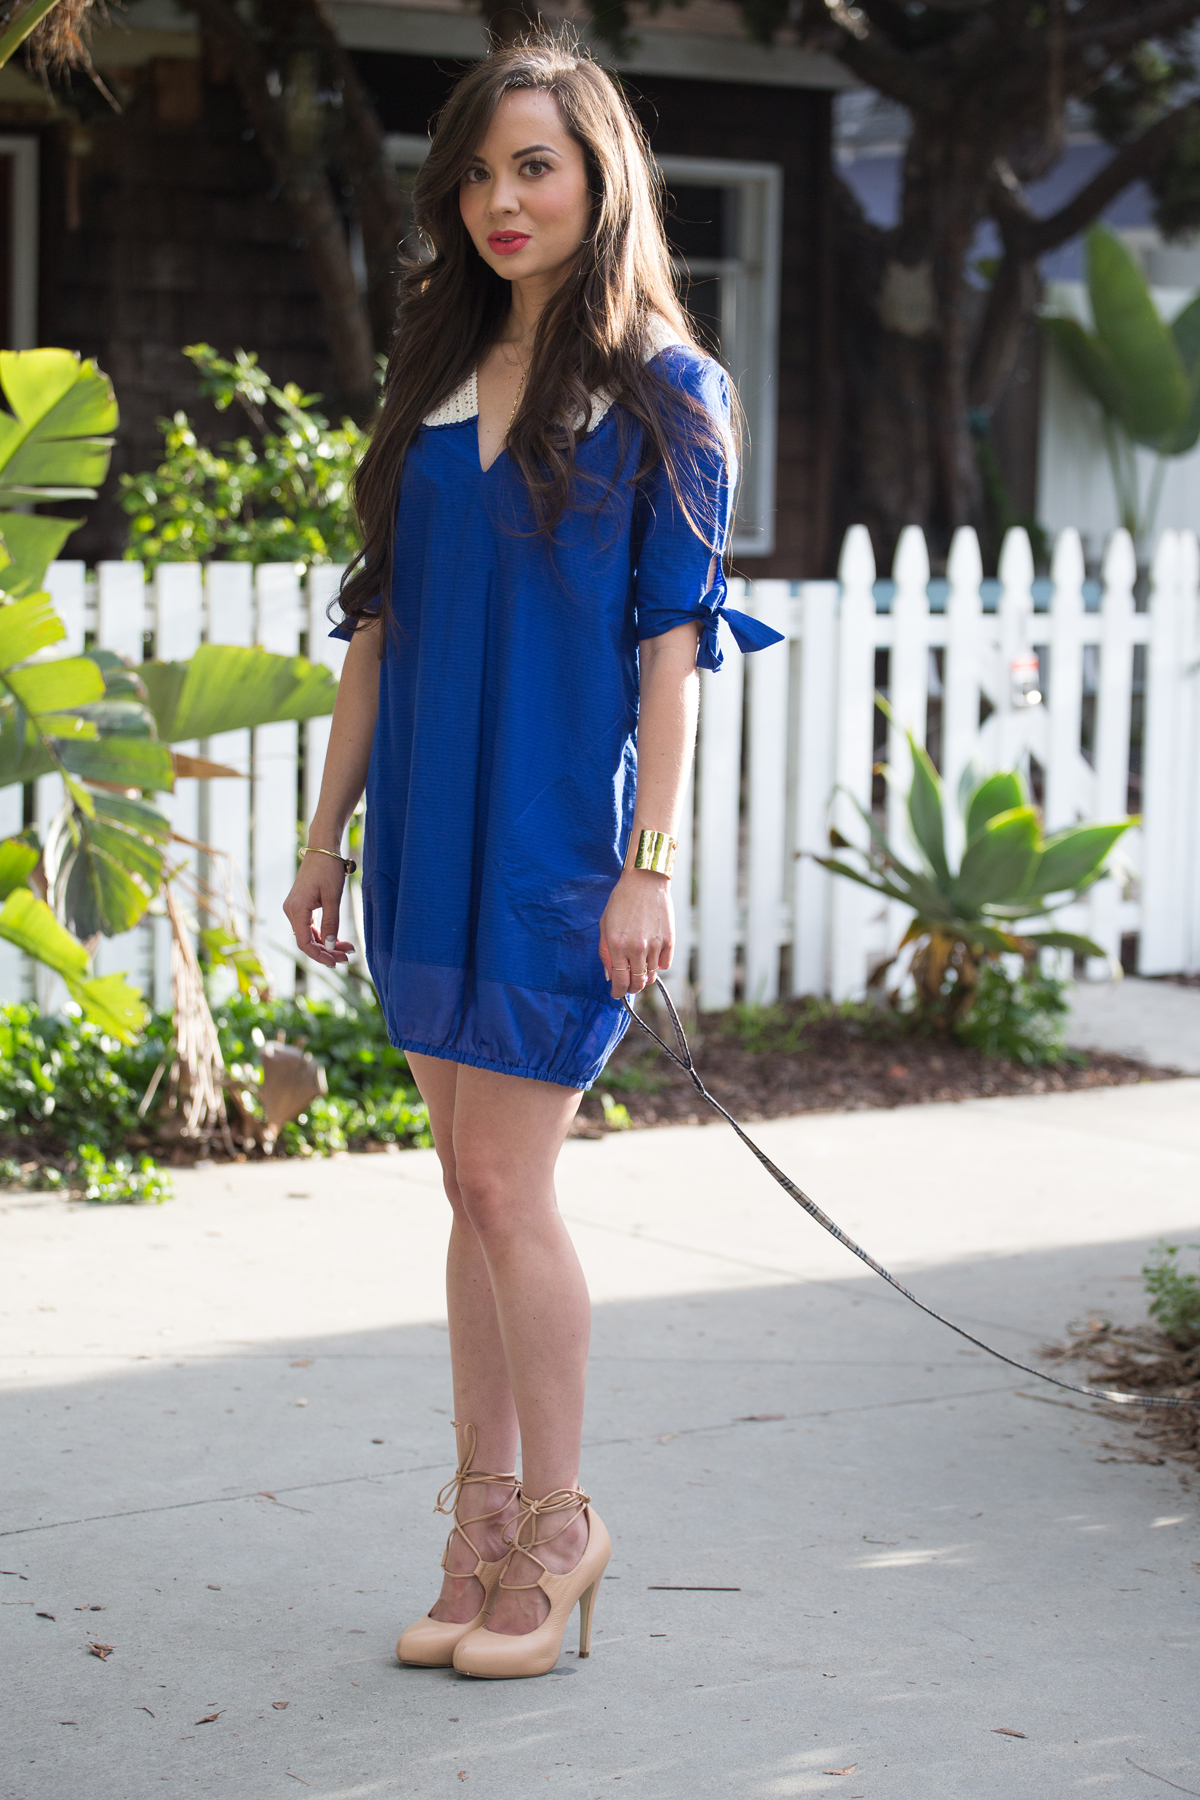 royal blue short sleeve dress, ootd, lerario beatriz, lerario beatriz dress, royal blue dress, royal blue short sleeve mini dress, royal blue mini dress, royal blue collar dress, kathryn amberleigh, kathryn amberleigh pumps, kathryn amberleigh heels, nude pumps, nude heels, nude laceup pumps, nude laceup heels, nude lace up pumps, nude lace up heels, perfect blowout, long hair model, model eyelashes, model perfect lips, artelier globe cuff, artelier map cuff, kelly wearstler necklace, gold collar necklace, kelly wearstler cuff, kelly wearstler bracelet, kelly wearstler jewelry, venice beach canals, venice canals, venice beach canals shoot, venice beach canals photo shoot, drybar, blushington, enamel diction, drybar cosmo blowout, drybar model, drybar blowout, blushington makeup, enamel diction nail art, enamel diction manicure, los angeles nail art, jouer grace, off duty model style, los angeles spring clothes, camille newbern, papillon, the la survival guide, la survival guide, thelasurvivalguide, lasurvivalguide, eurasian models, eurasian actresses, los angeles fashion blogs, los angeles style blogs, shopping la, shopping los angeles, modeling la, modeling los angeles, long hair blowout, smile model, modeling smile, dog smile, papillon, papillon dog, los angeles photo shoot, model on dog walk, dog and model